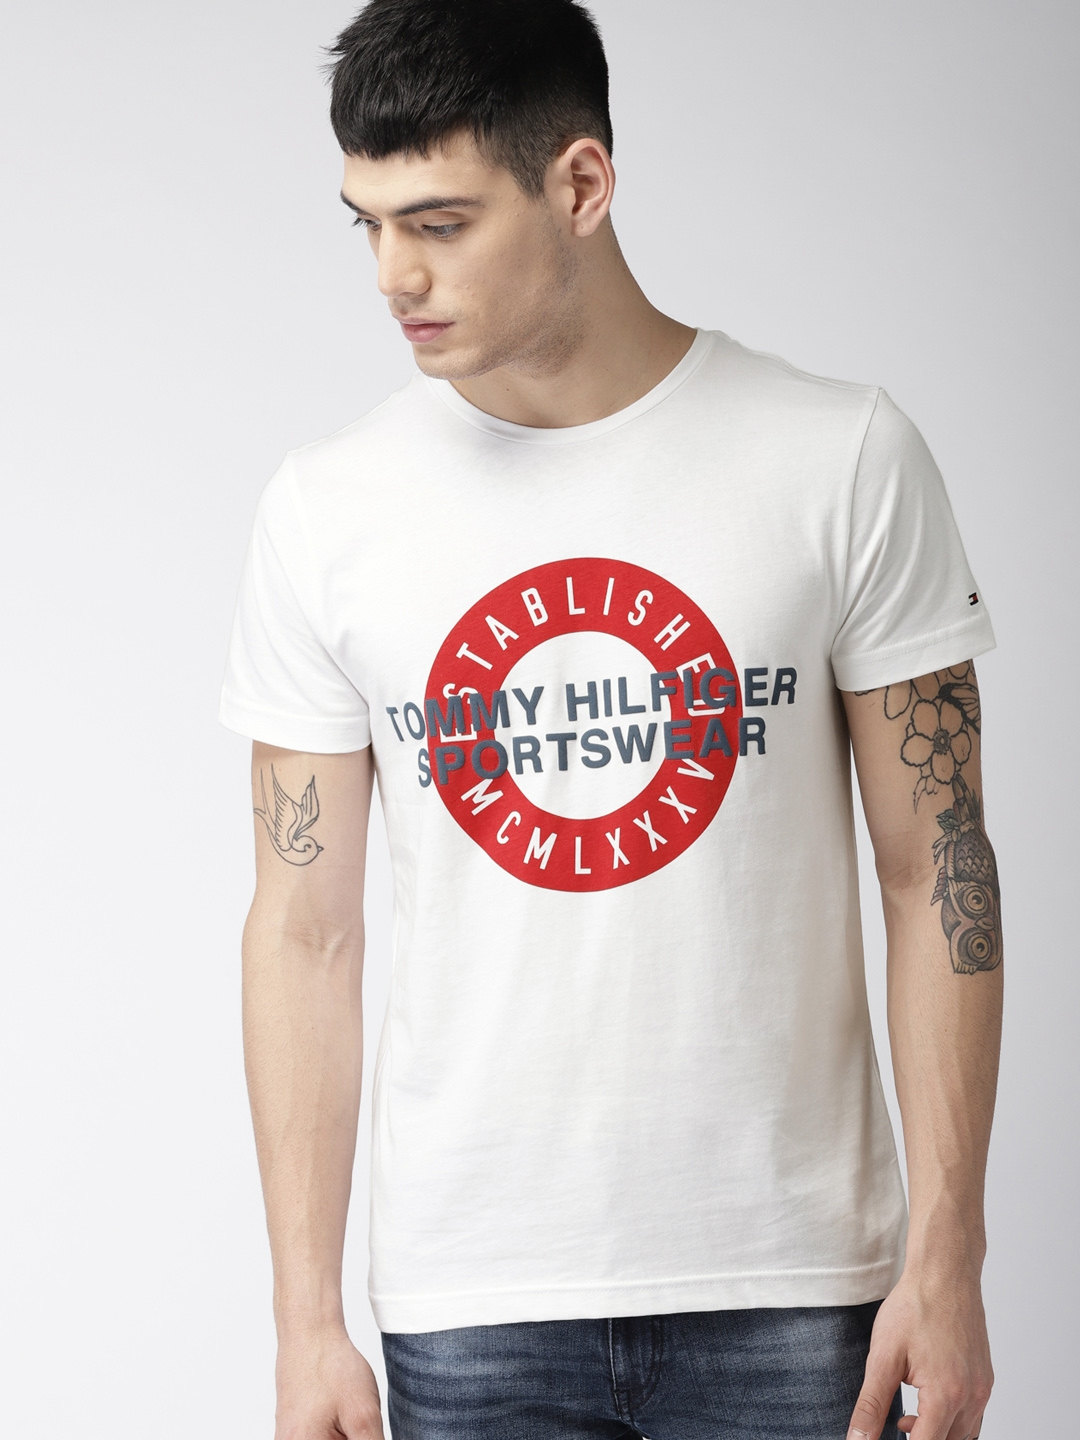 d81c01249 Buy Tommy Hilfiger Men White Printed Round Neck T Shirt - Tshirts ...